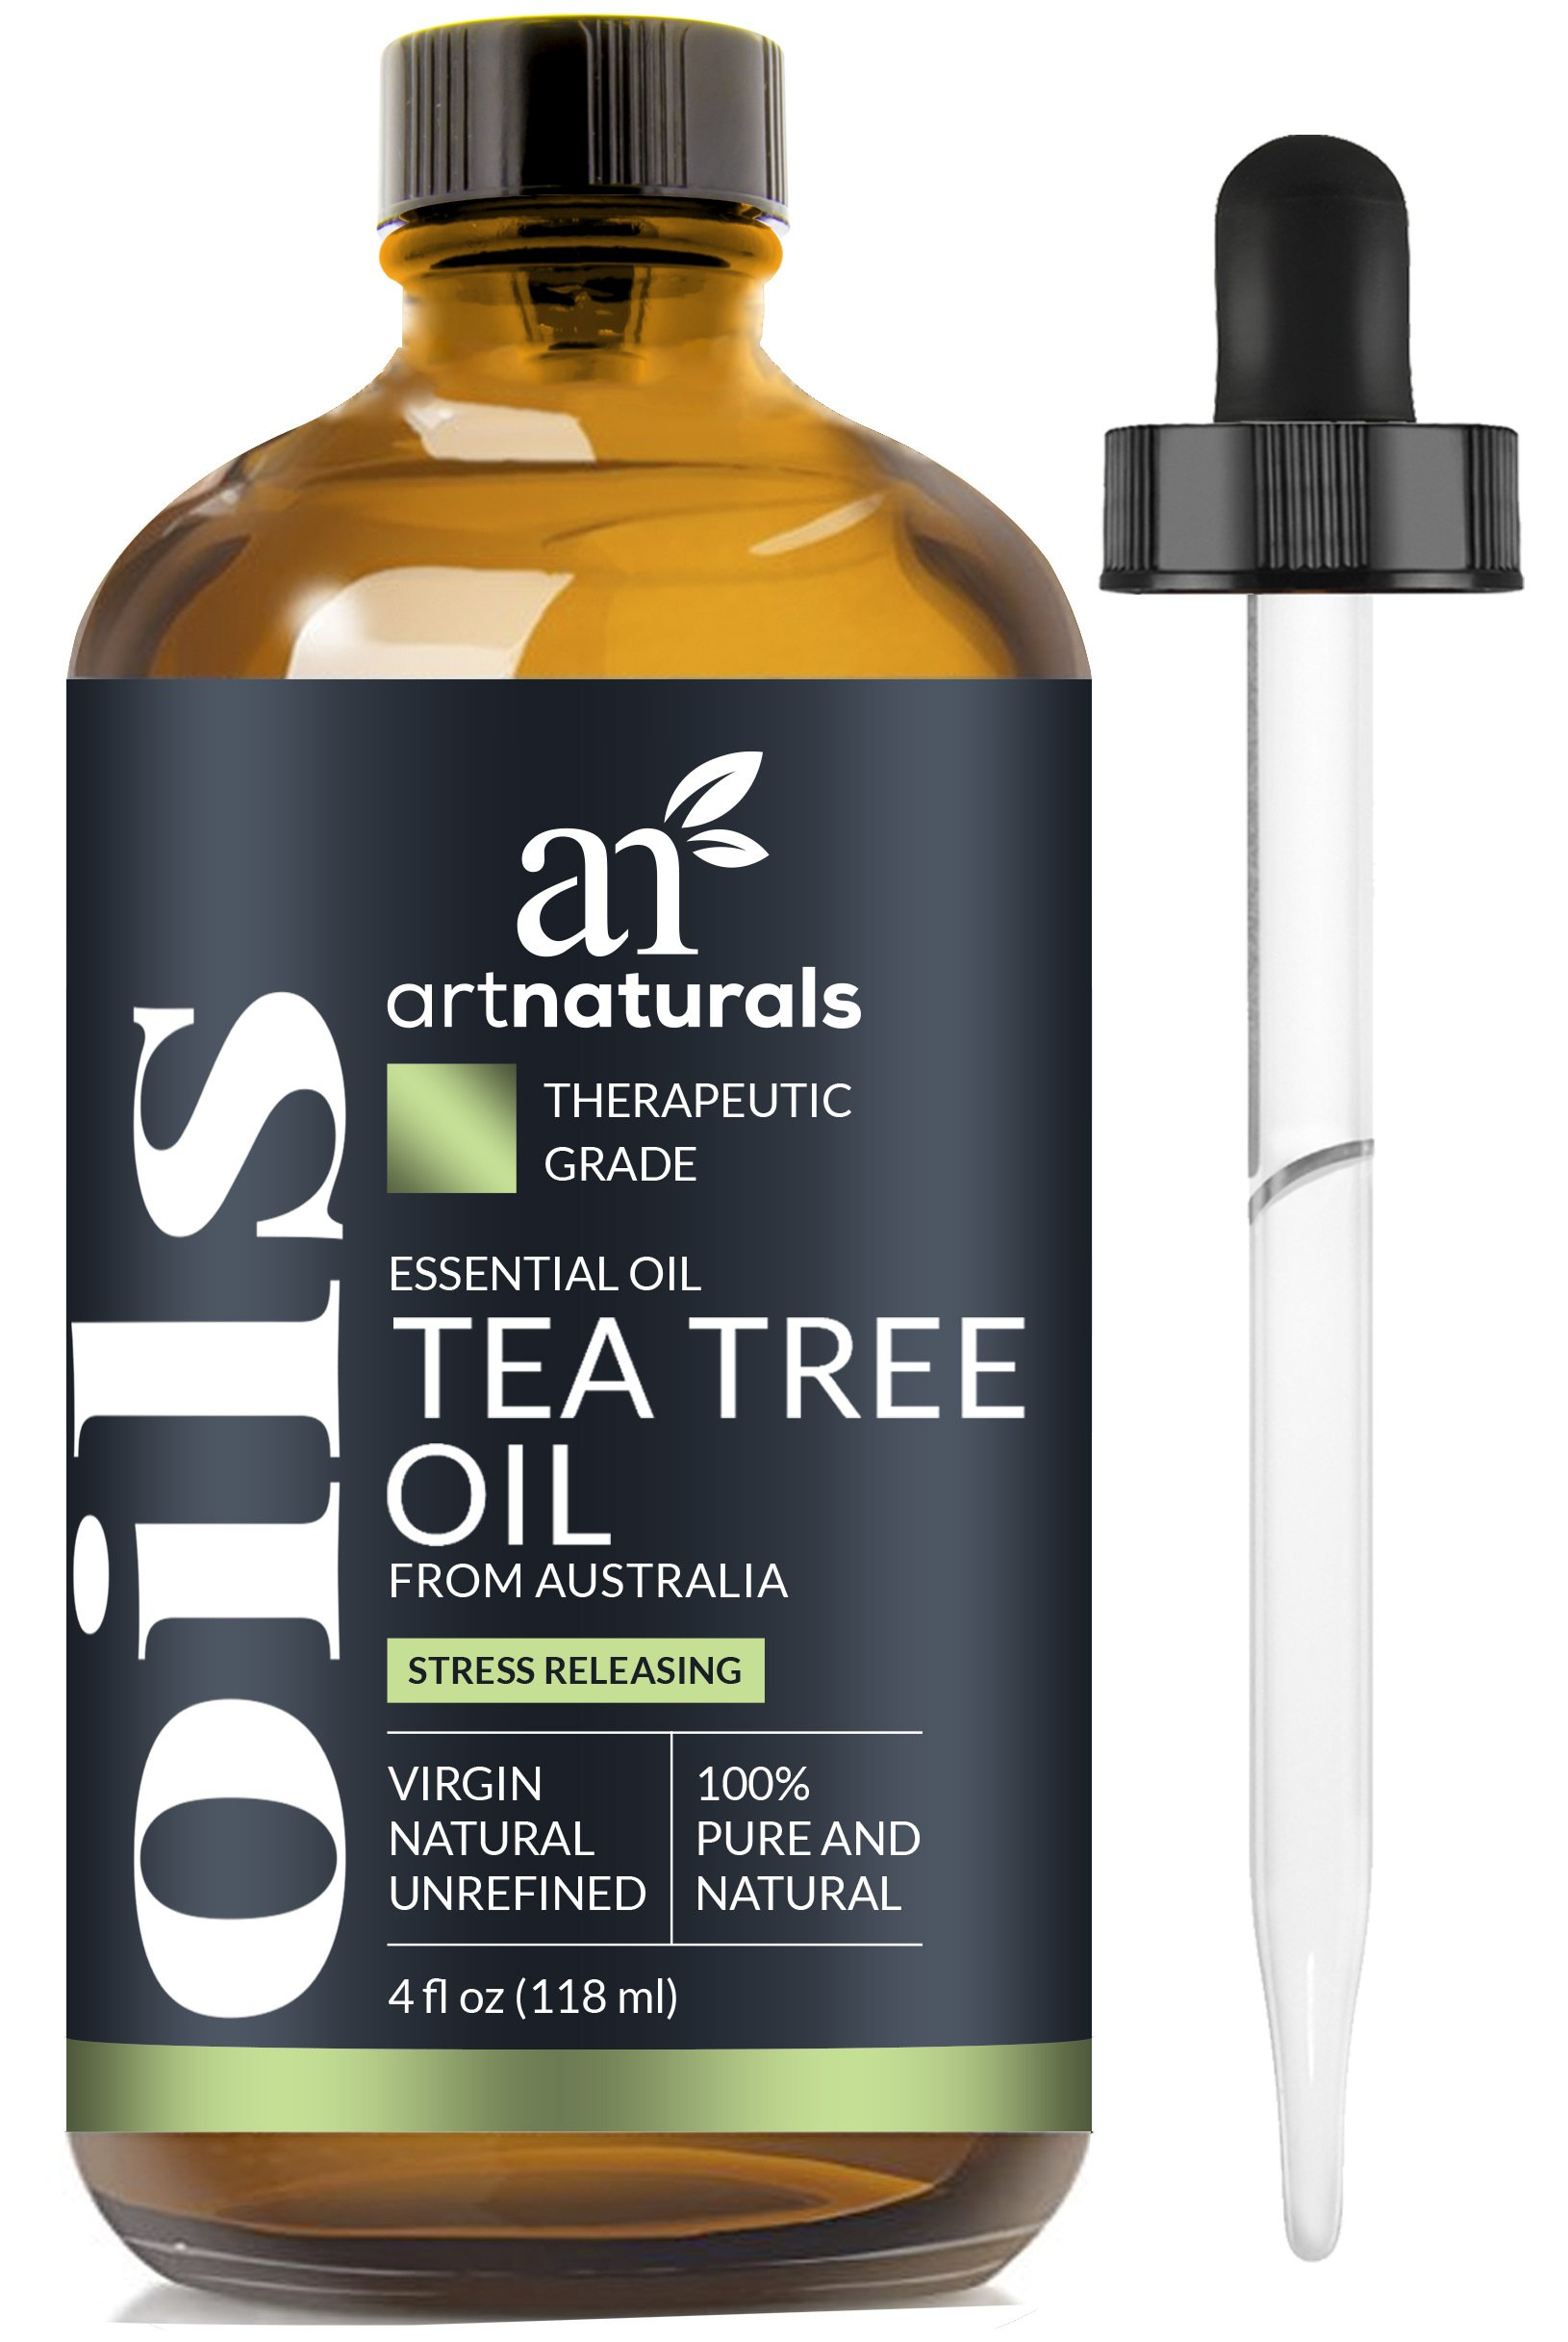 ArtNaturals 100% Pure Tea Tree Essential Oil - (4 Fl Oz/120ml) - Natural Premium Melaleuca Therapeutic Grade - Great with Soap and Shampoo, Face and Body Wash - Treatment for Acne, Lice